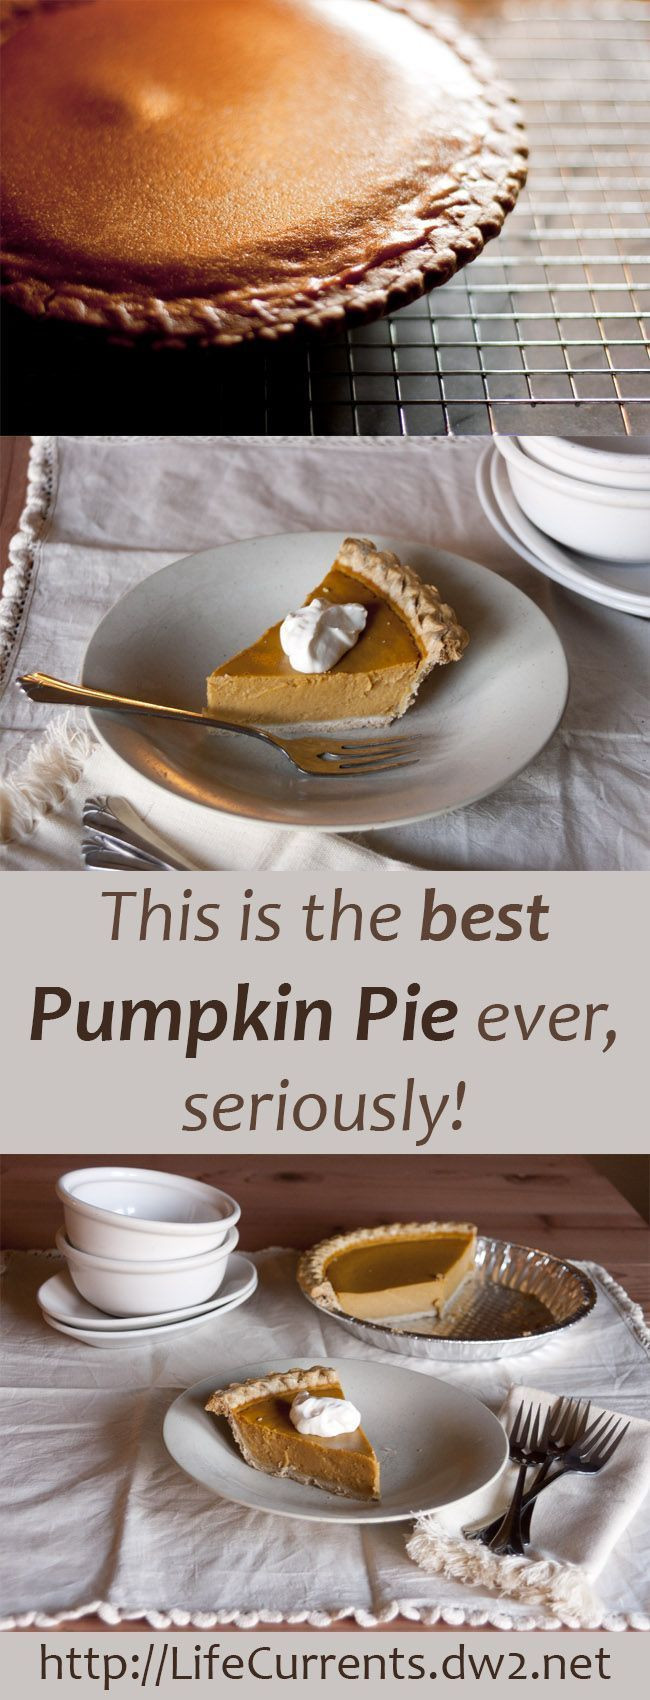 Pumpkin Pie Thanksgiving  17 Best images about pies on Pinterest